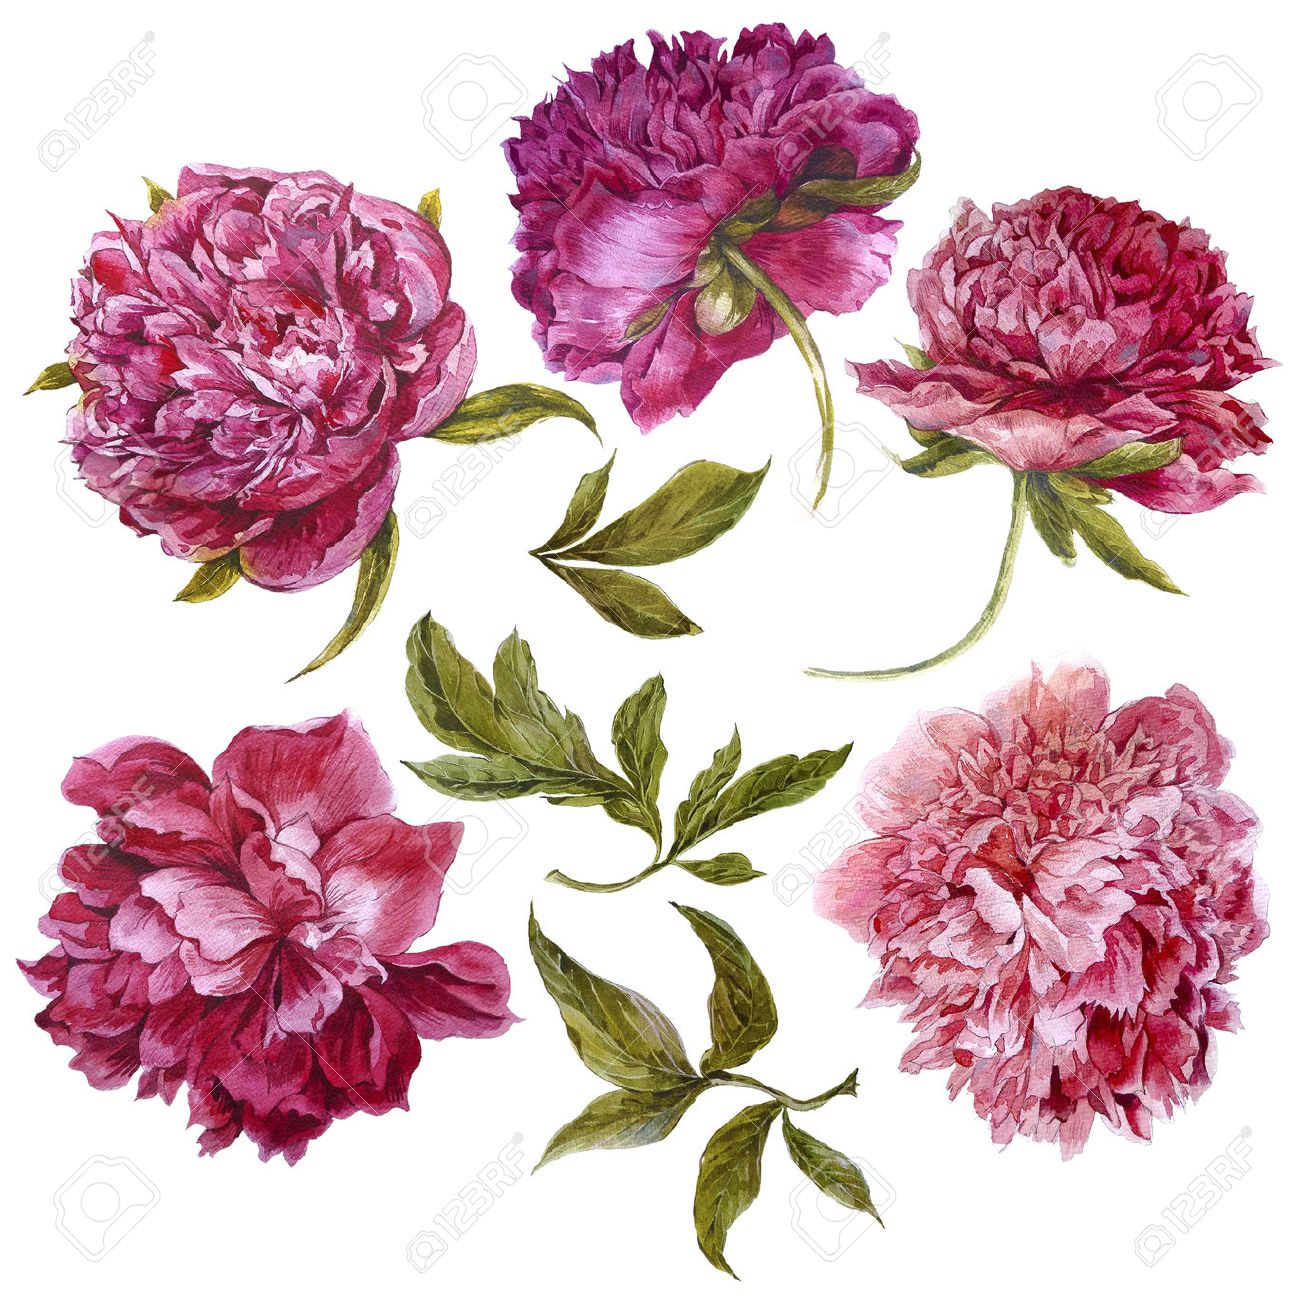 Set of watercolor dark pink peonies, separate flower, leaf, sprigs, isolated watercolor illustration Stock Illustration - 43627820